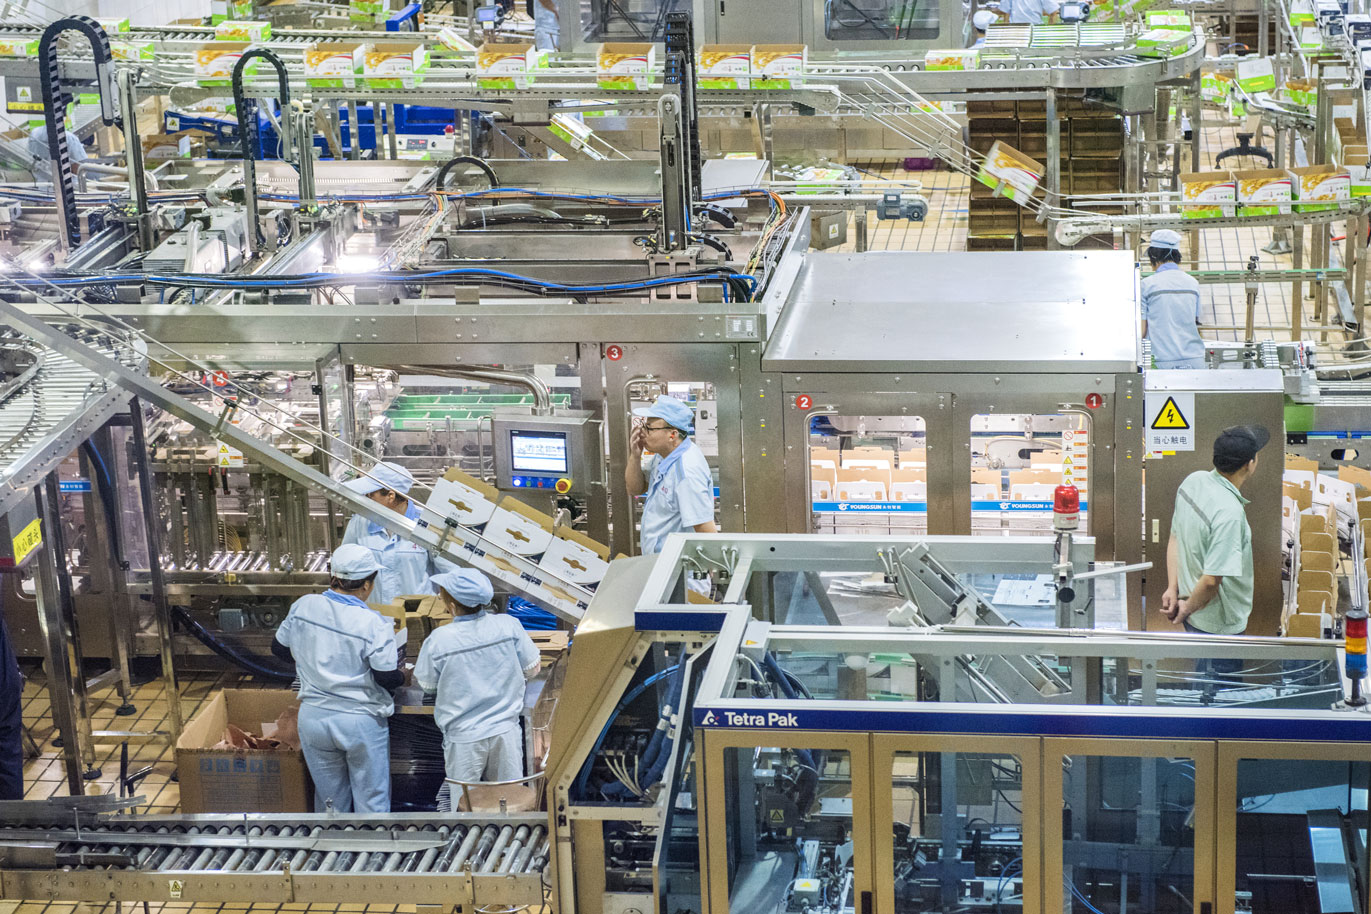 Overhead view of workers at a food processing plant